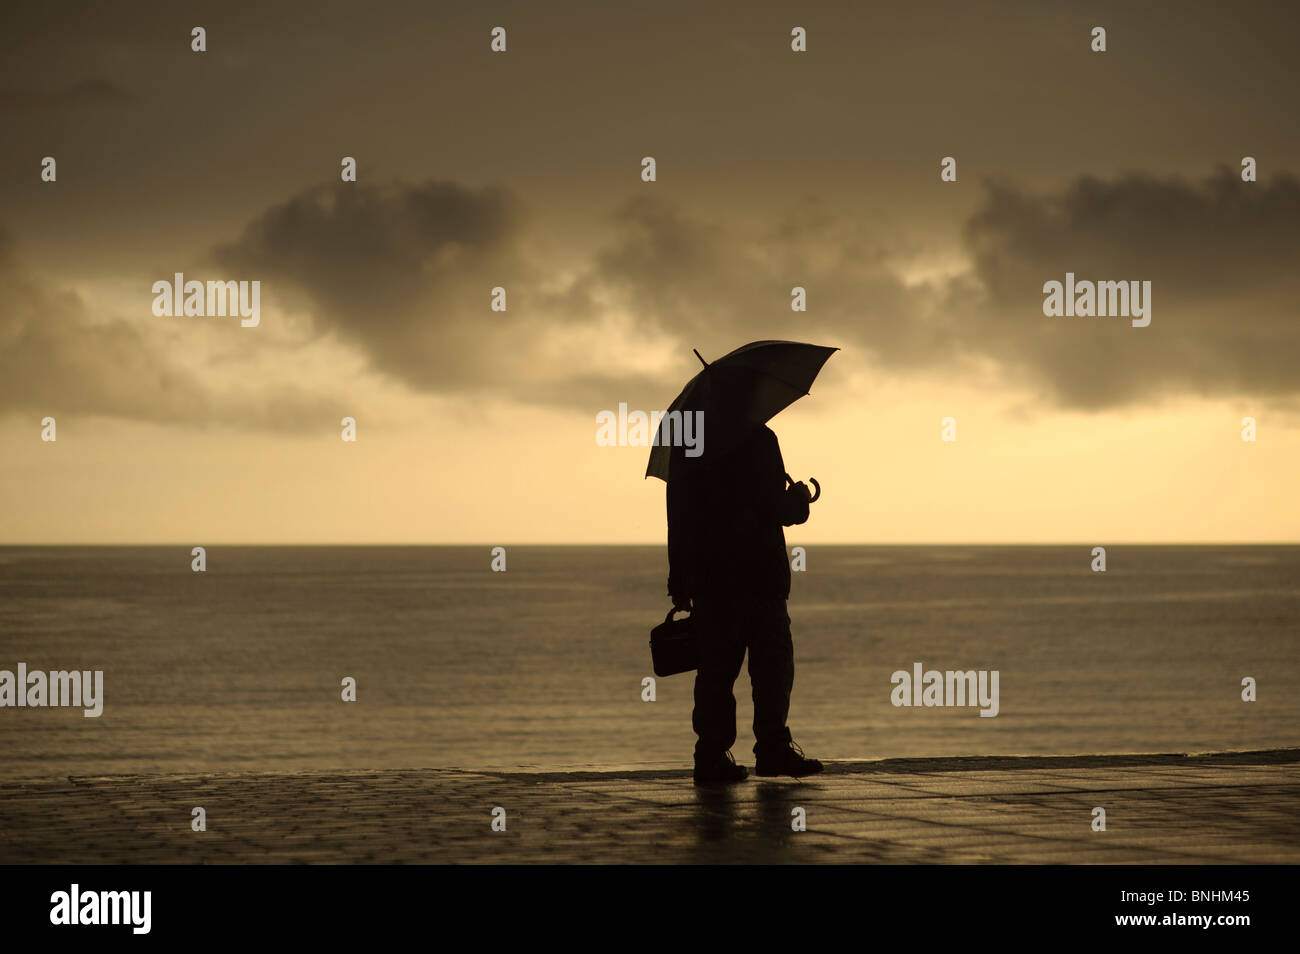 A man sheltering under an umbrella on a wet summer evening, Aberystwyth Wales UK - Stock Image